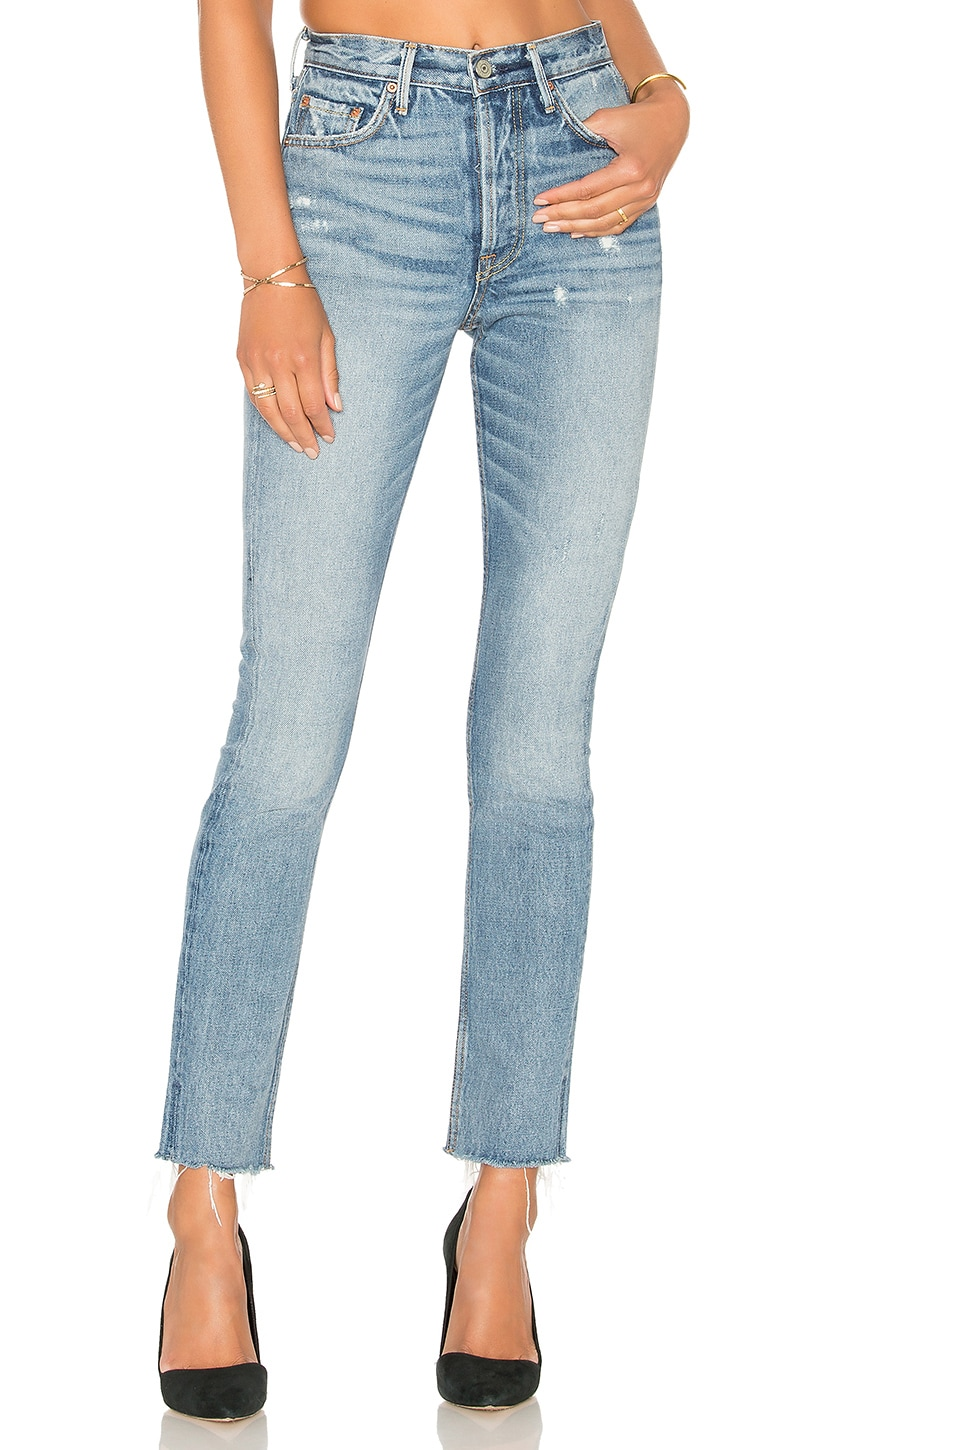 GRLFRND x REVOLVE Karolina High-Rise Skinny Jean in Without Love